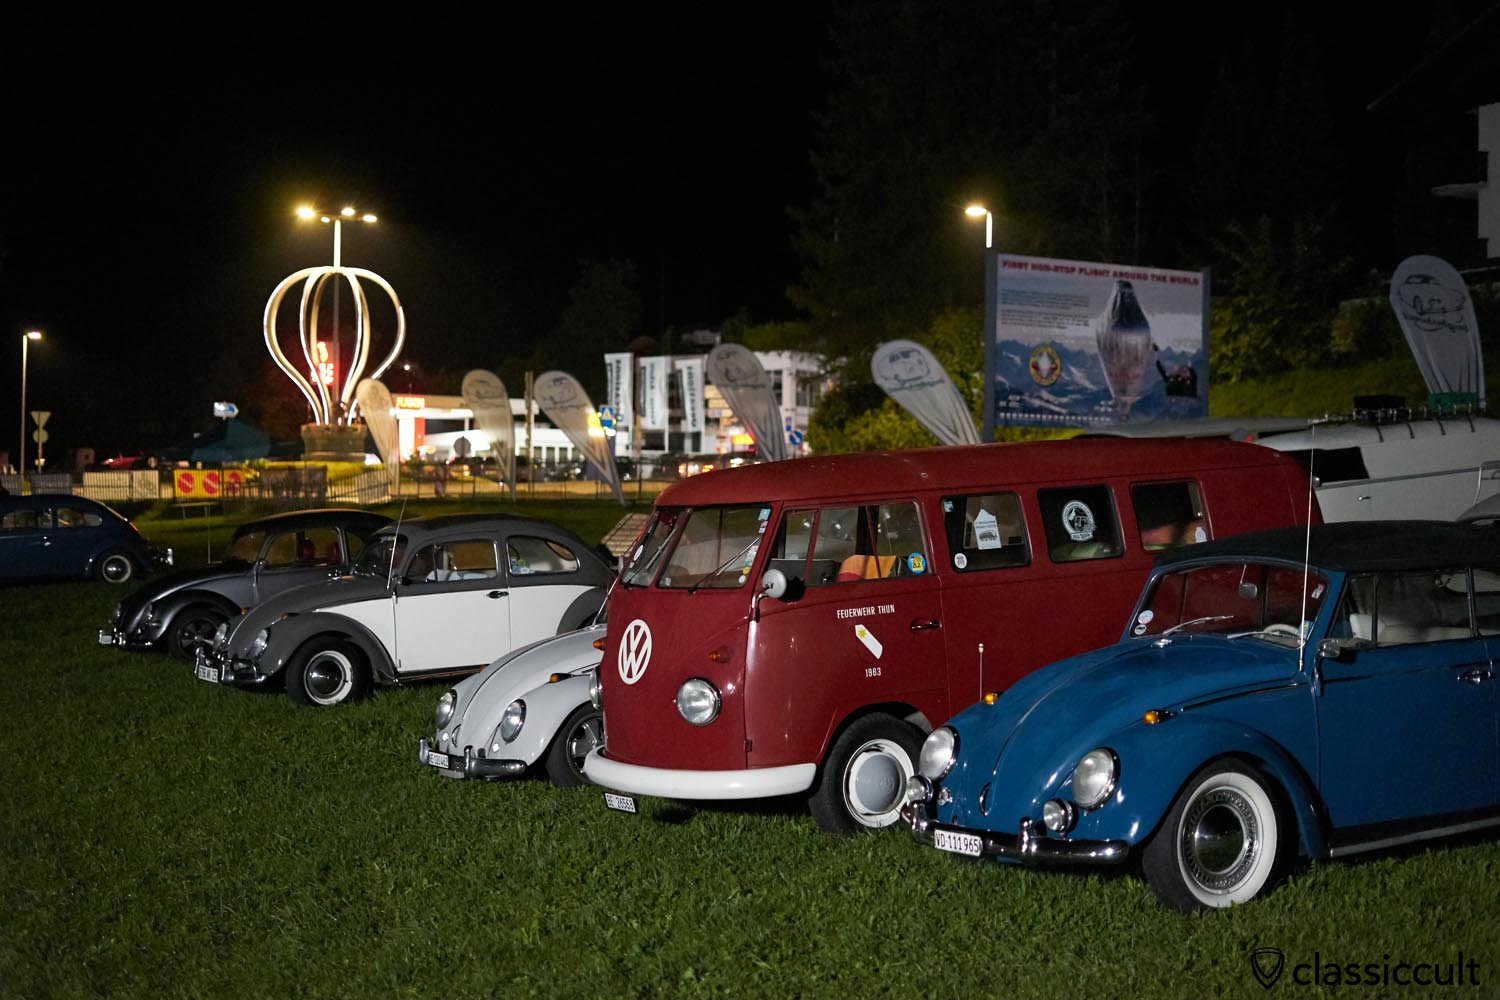 Hello Château d'Oex VW Meeting, 30 August 2019, 22:51